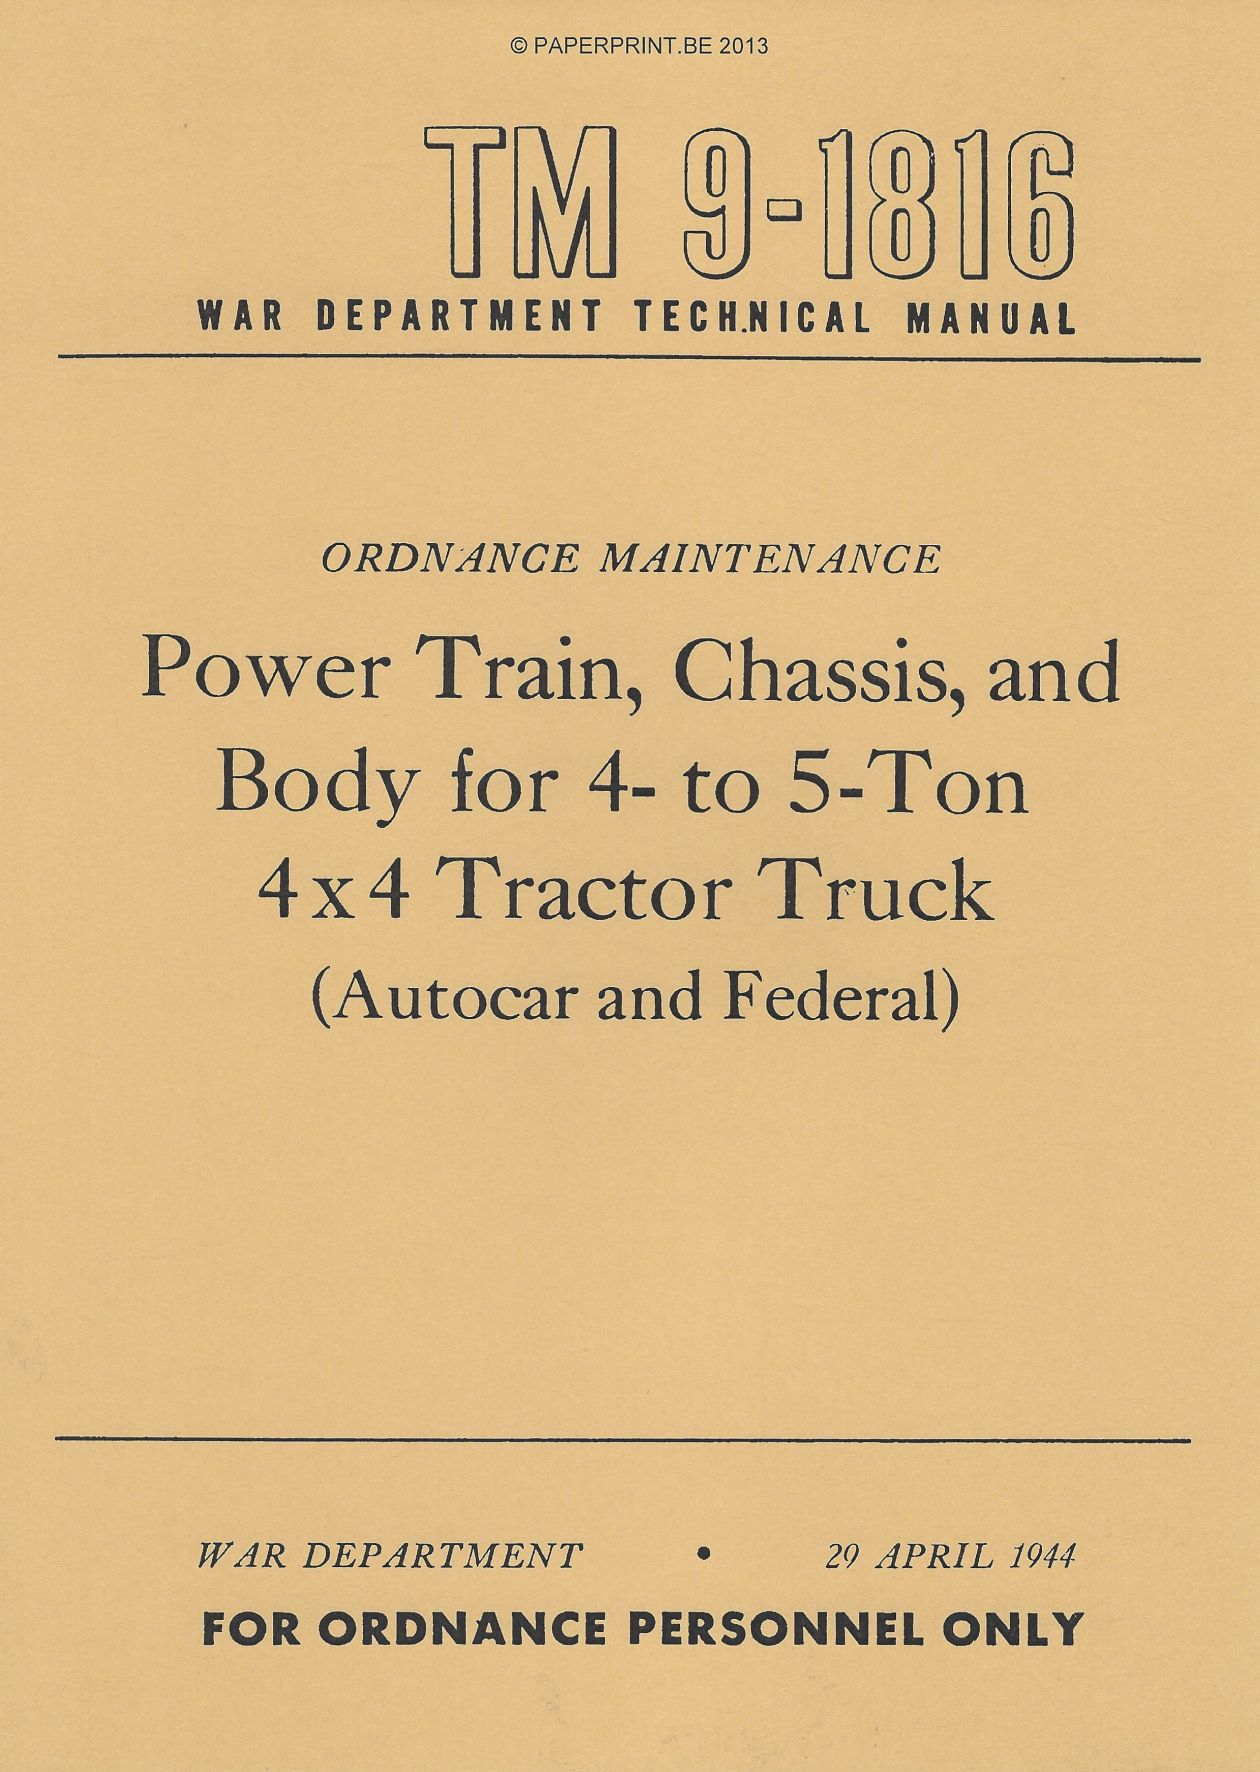 TM 9-1816 US POWER TRAIN, CHASSIS, AND BODY FOR 4-TO 5-TON 4 x 4 TRACTOR TRUCK (AUTOCAR AND FEDERAL)